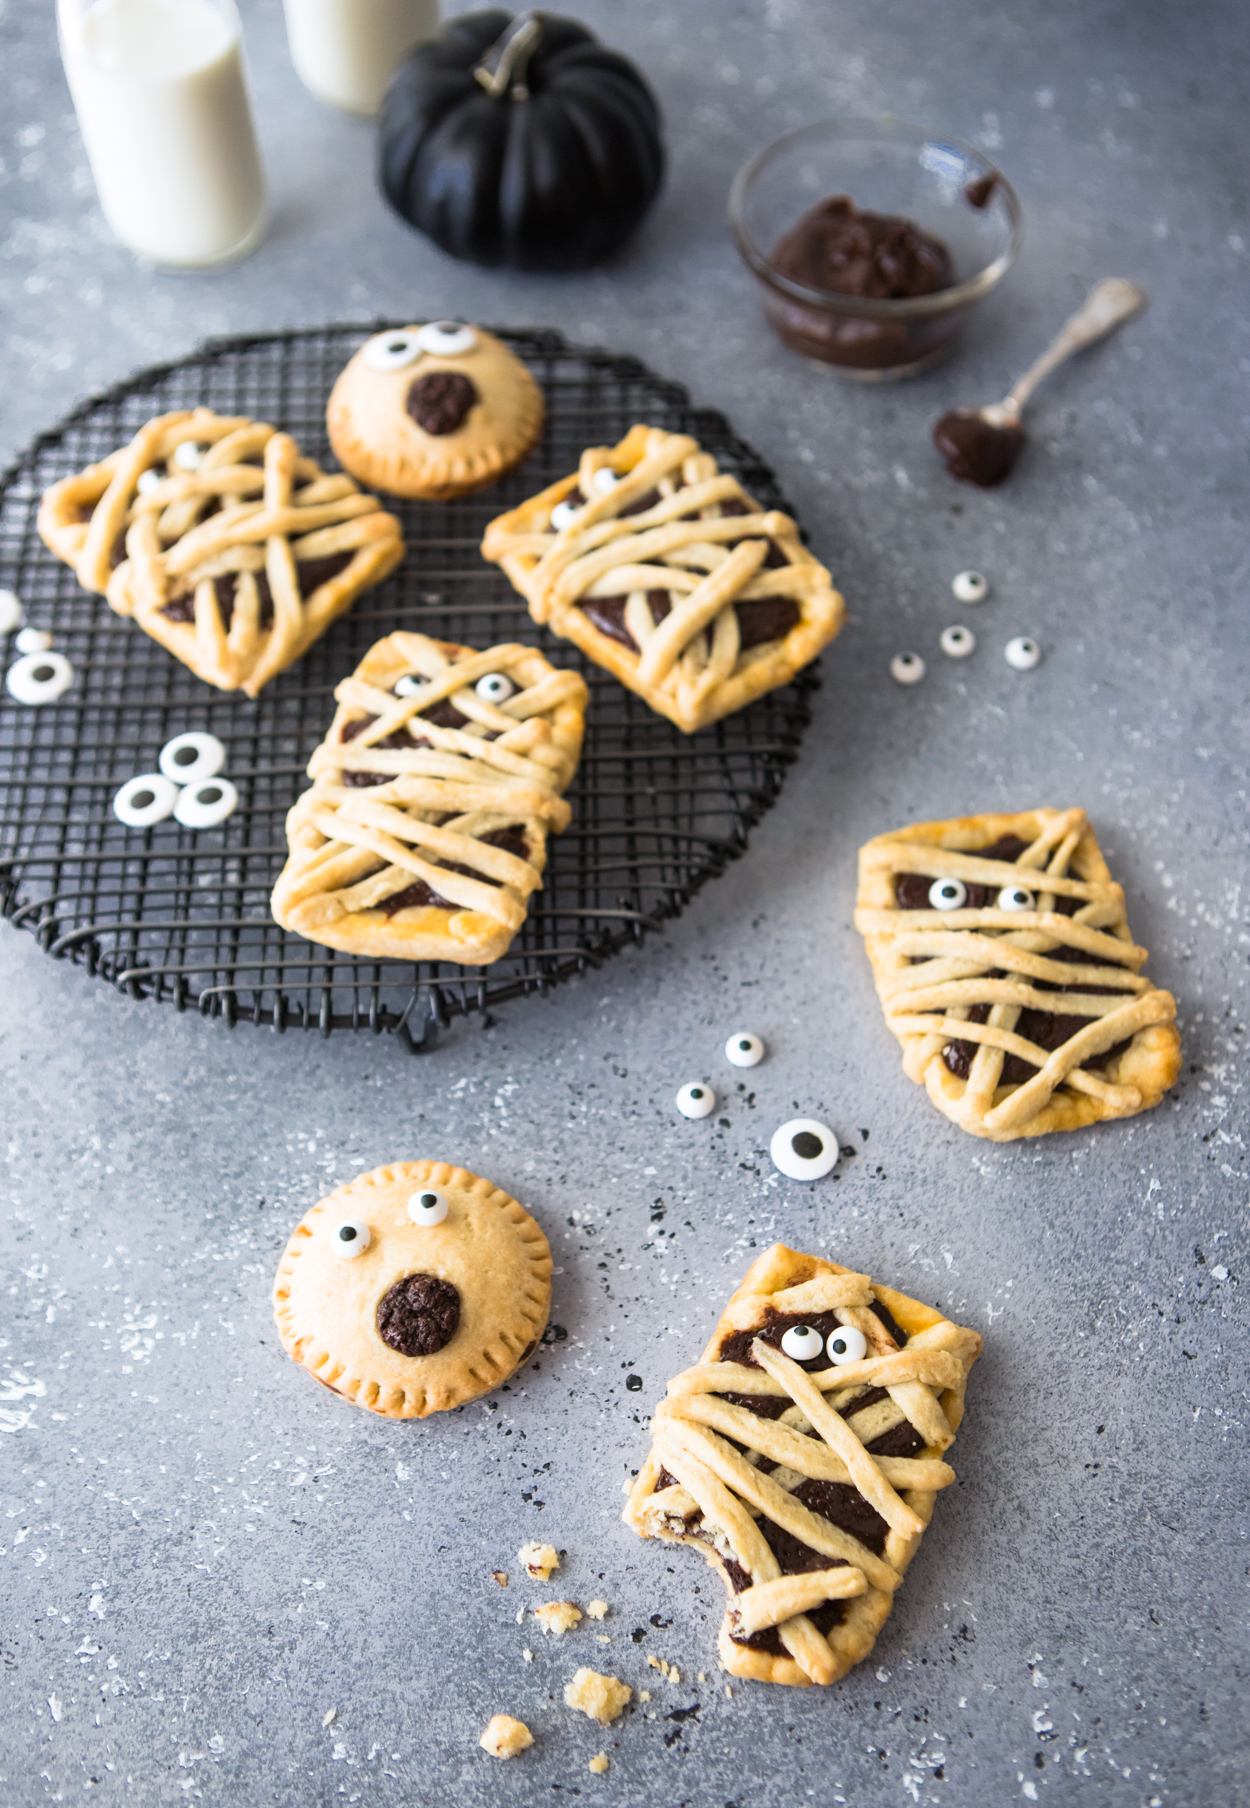 Chocolate filled hand pies on a black baking rack against a gray backdrop